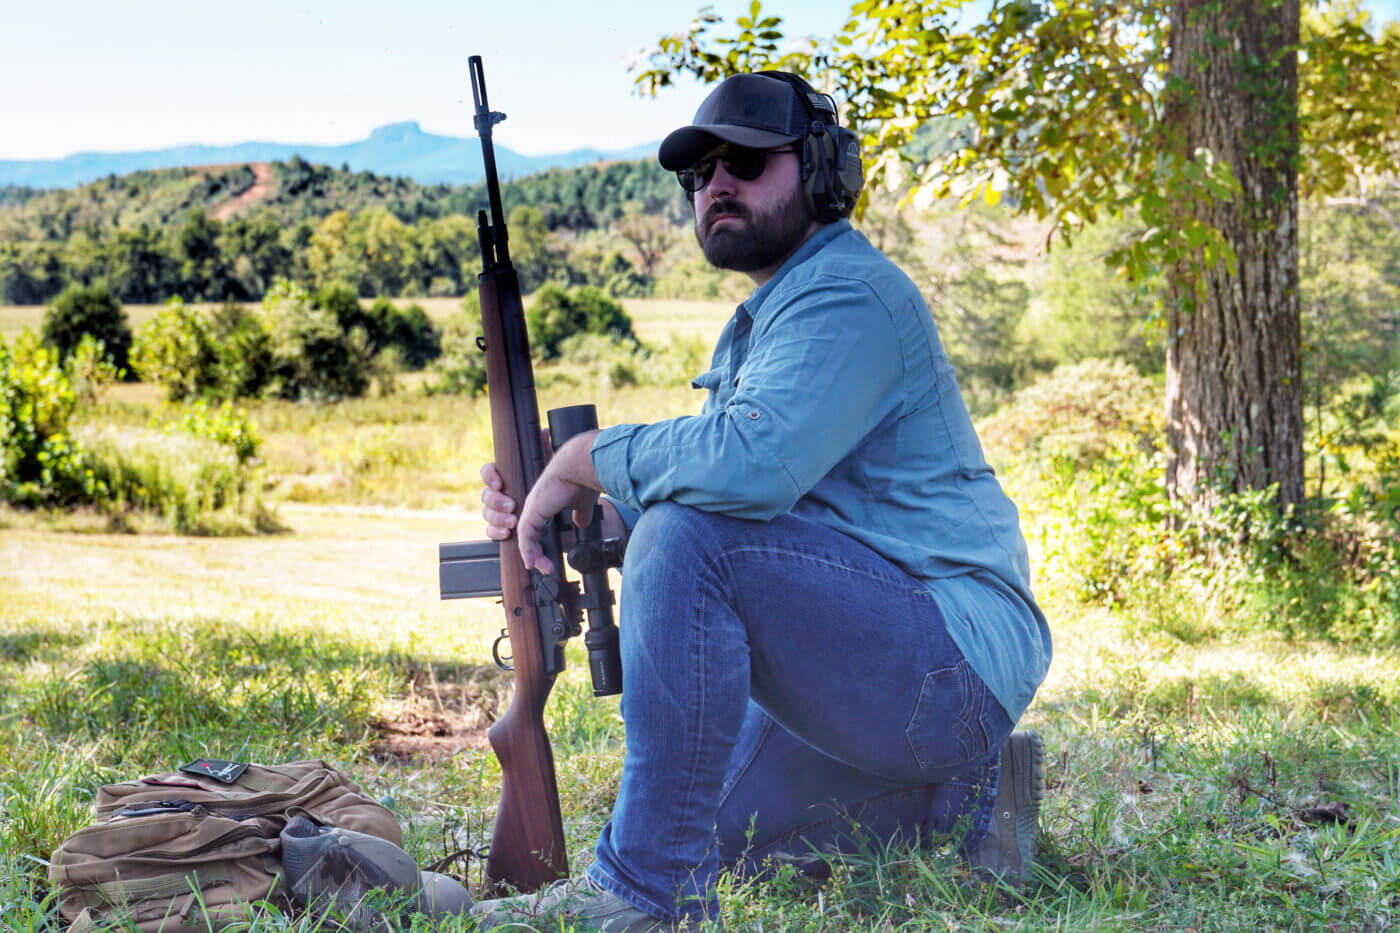 Reviewing the Springfield M1A Loaded rifle